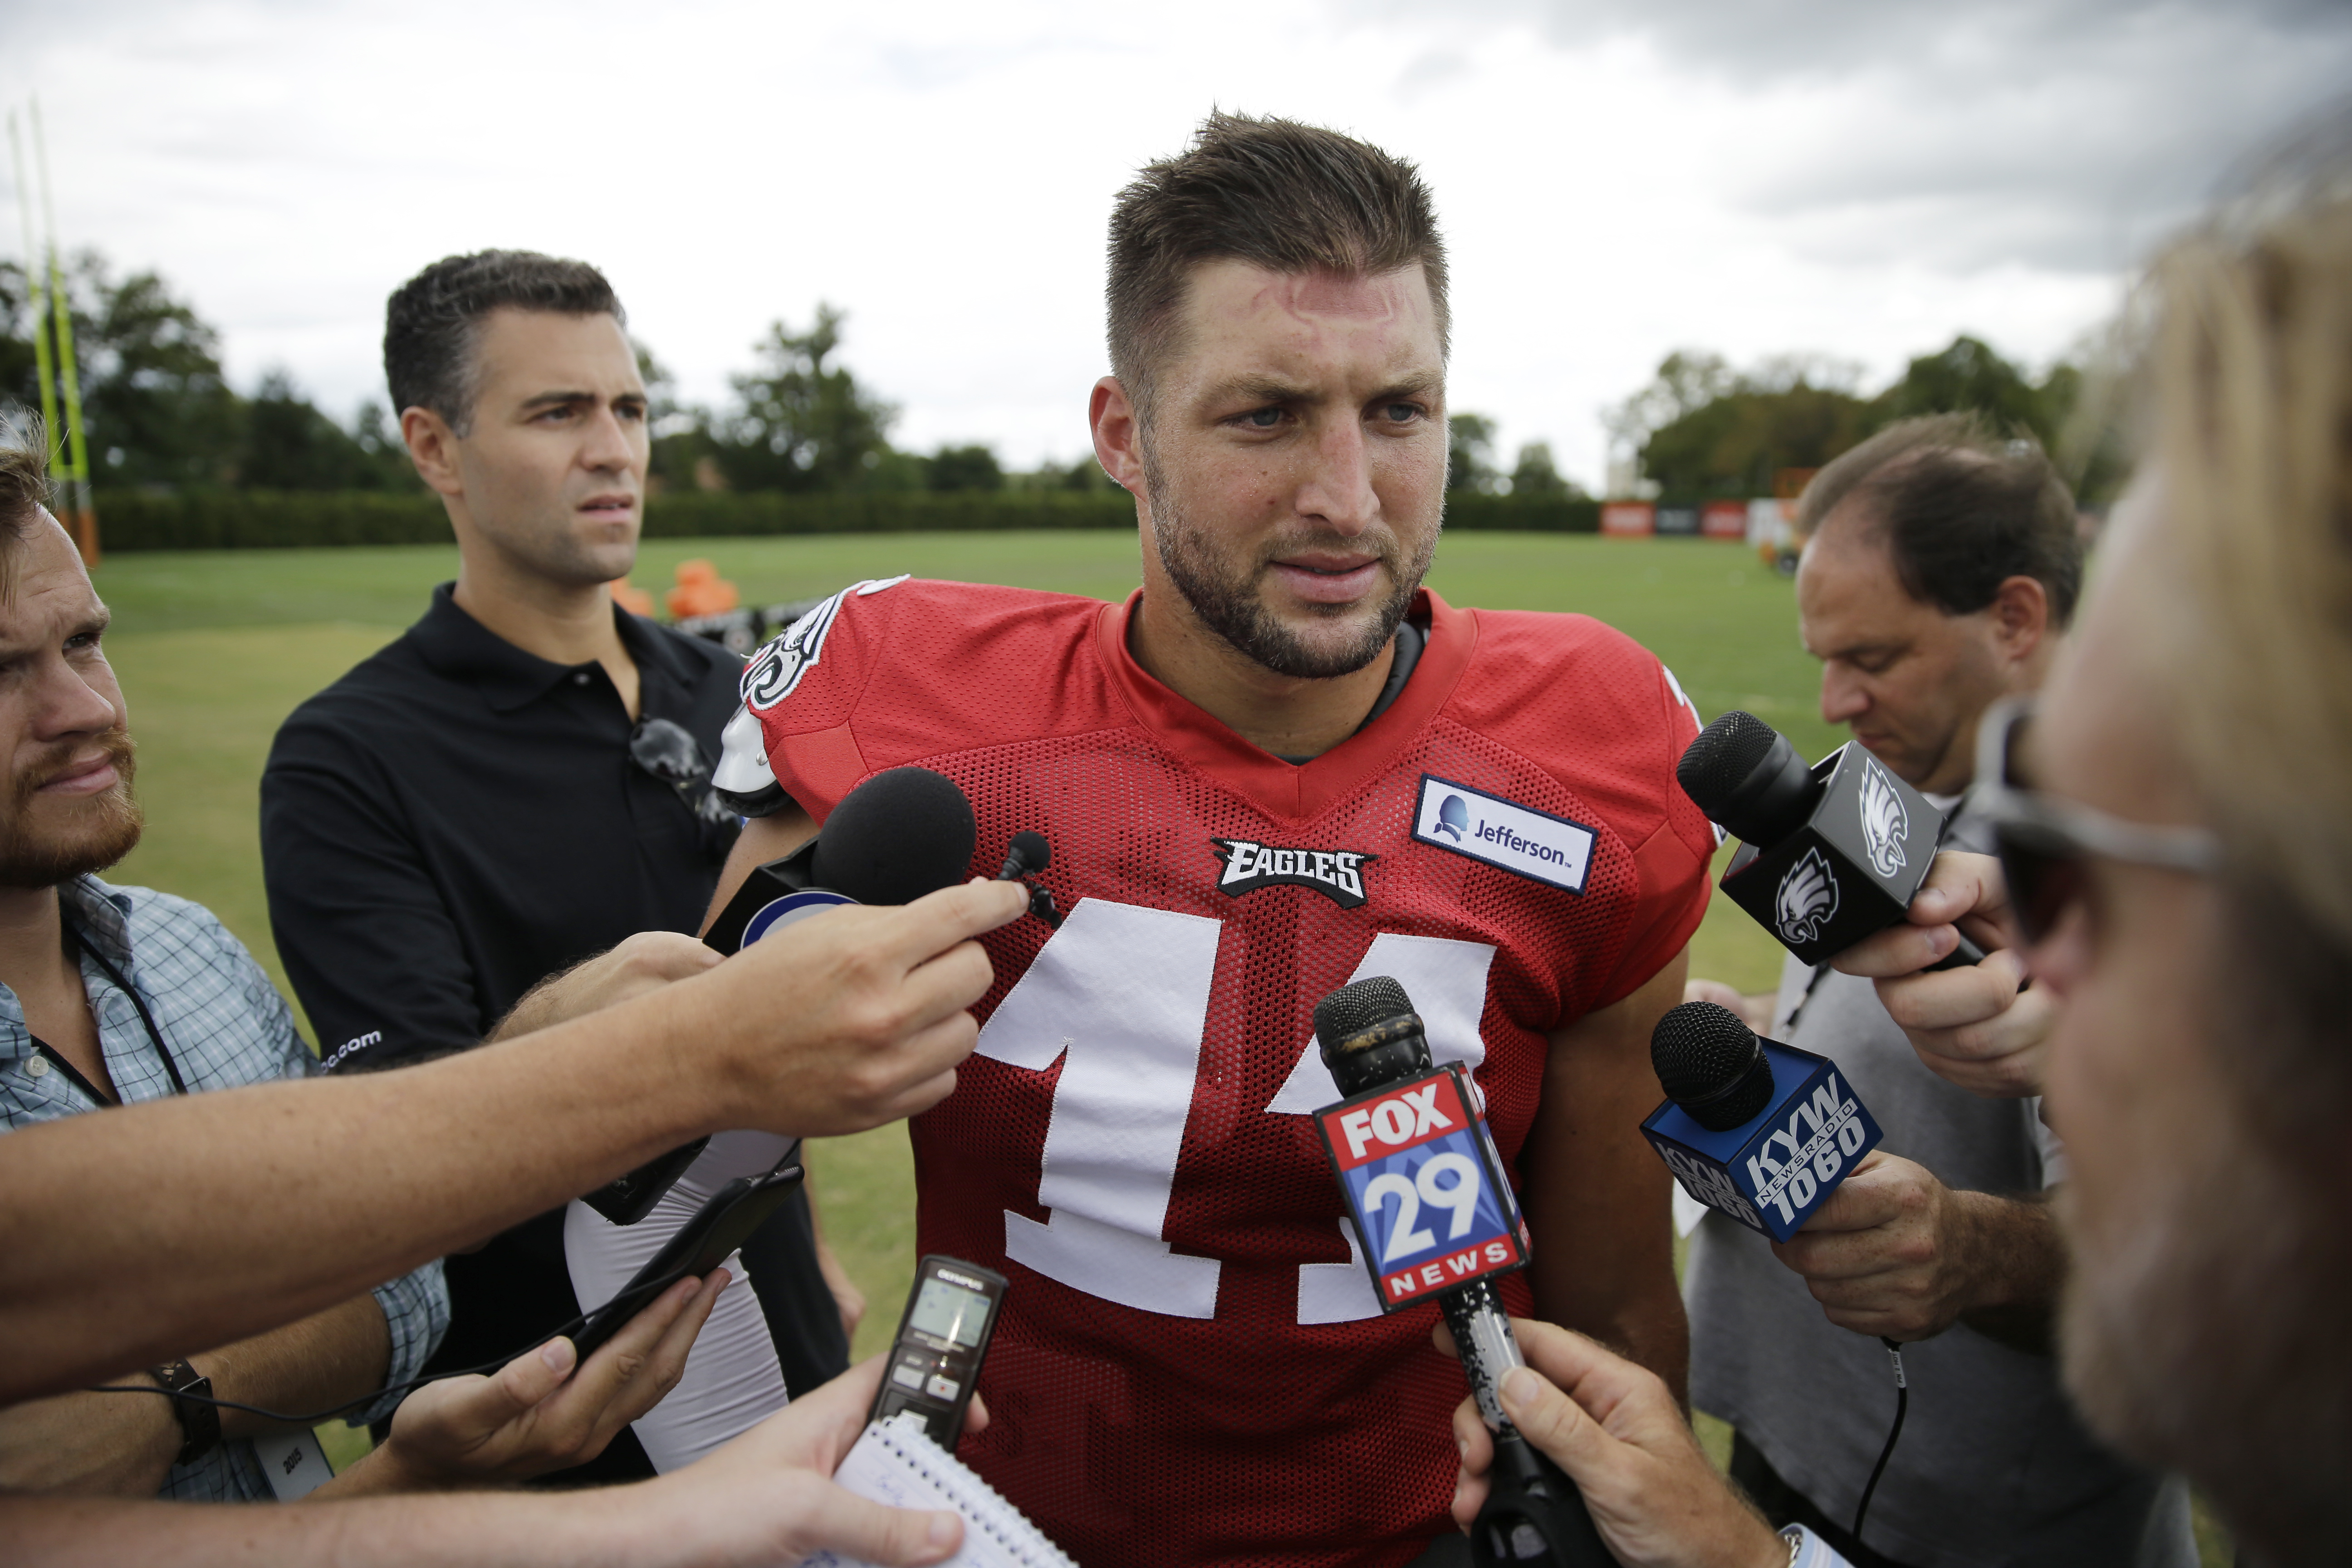 FILE - In this Aug. 20, 2015, file photo, Philadelphia Eagles quarterback Tim Tebow speaks with members of the media after NFL football training camp in Philadelphia. Two people familiar with the move say the Eagles released Tebow. Both sources spoke on c